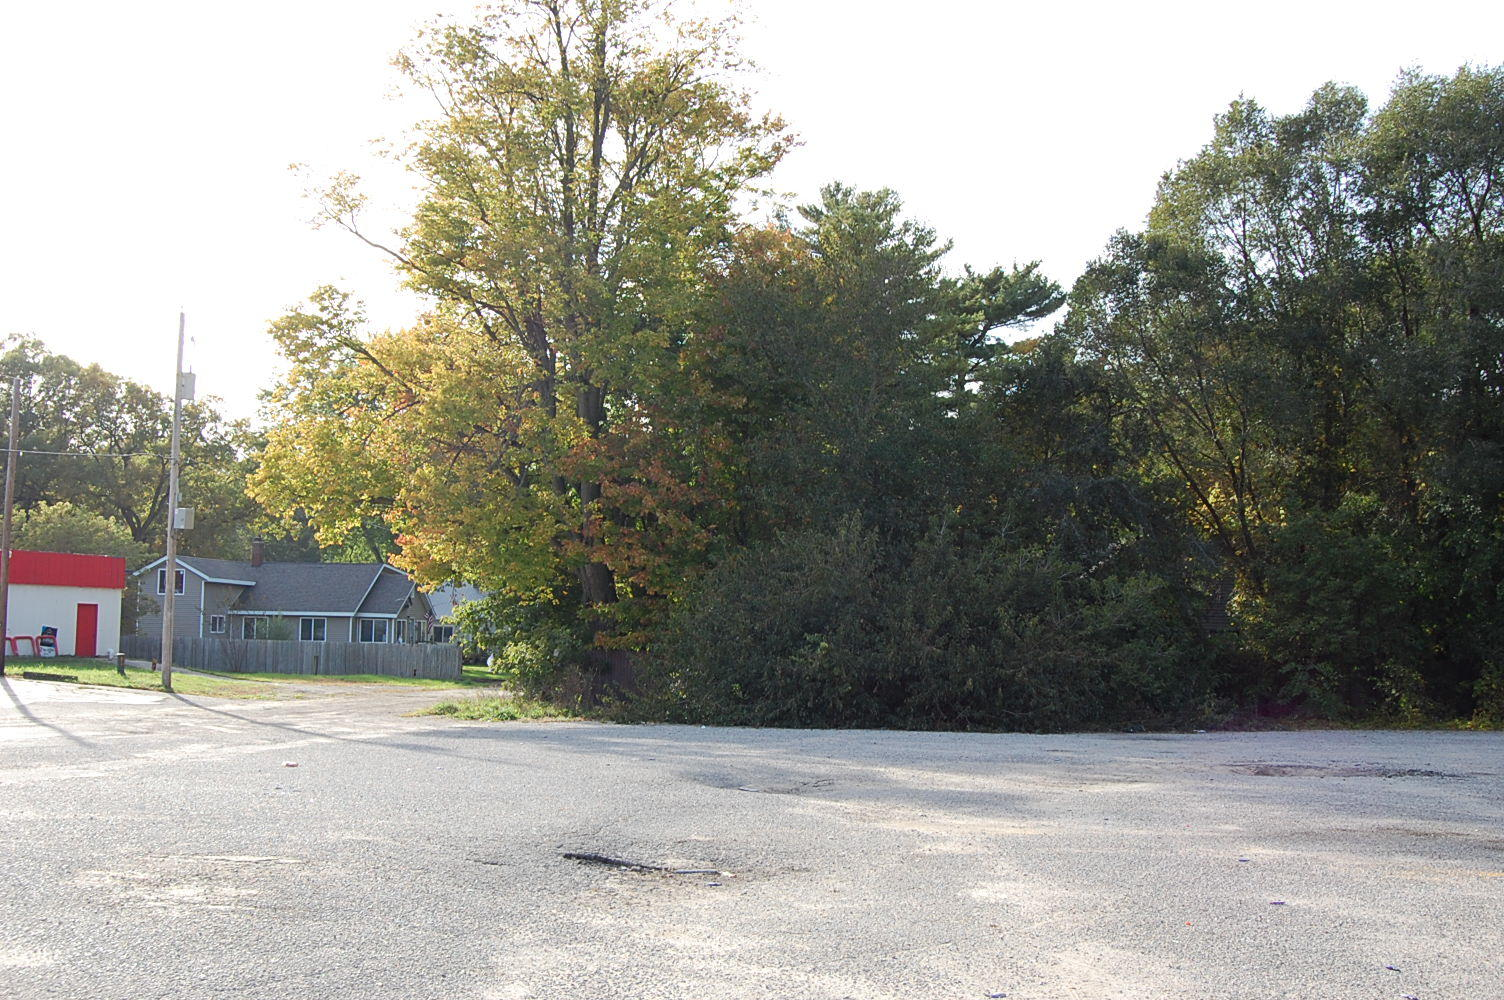 City of Holton Commercial Lot - Image 1